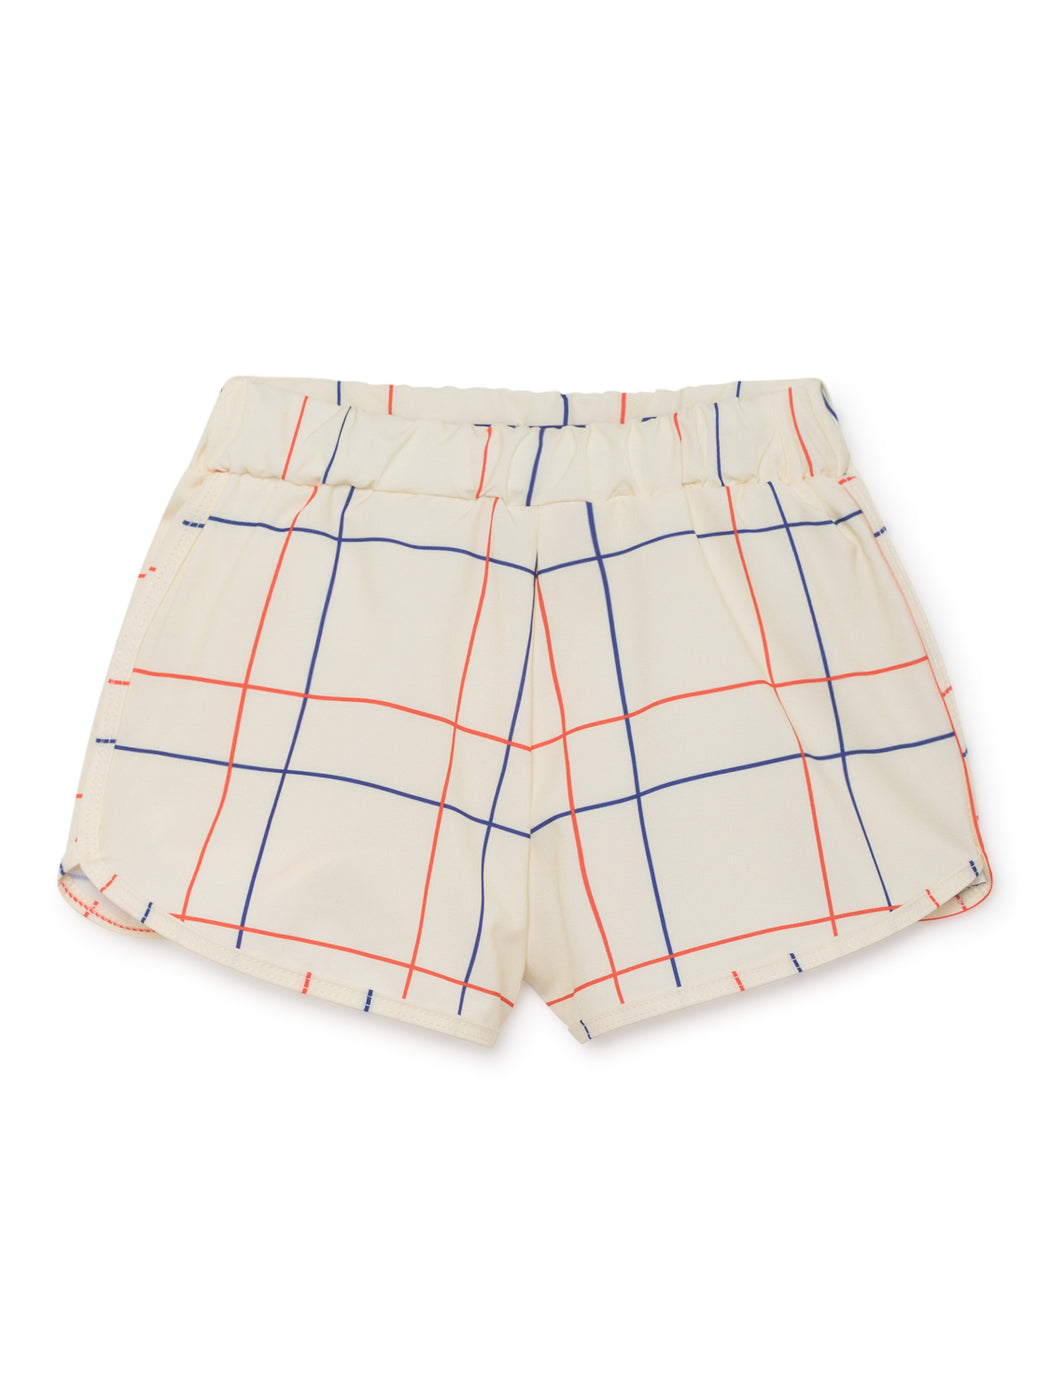 Bobo Choses - Lines Swim Trunk